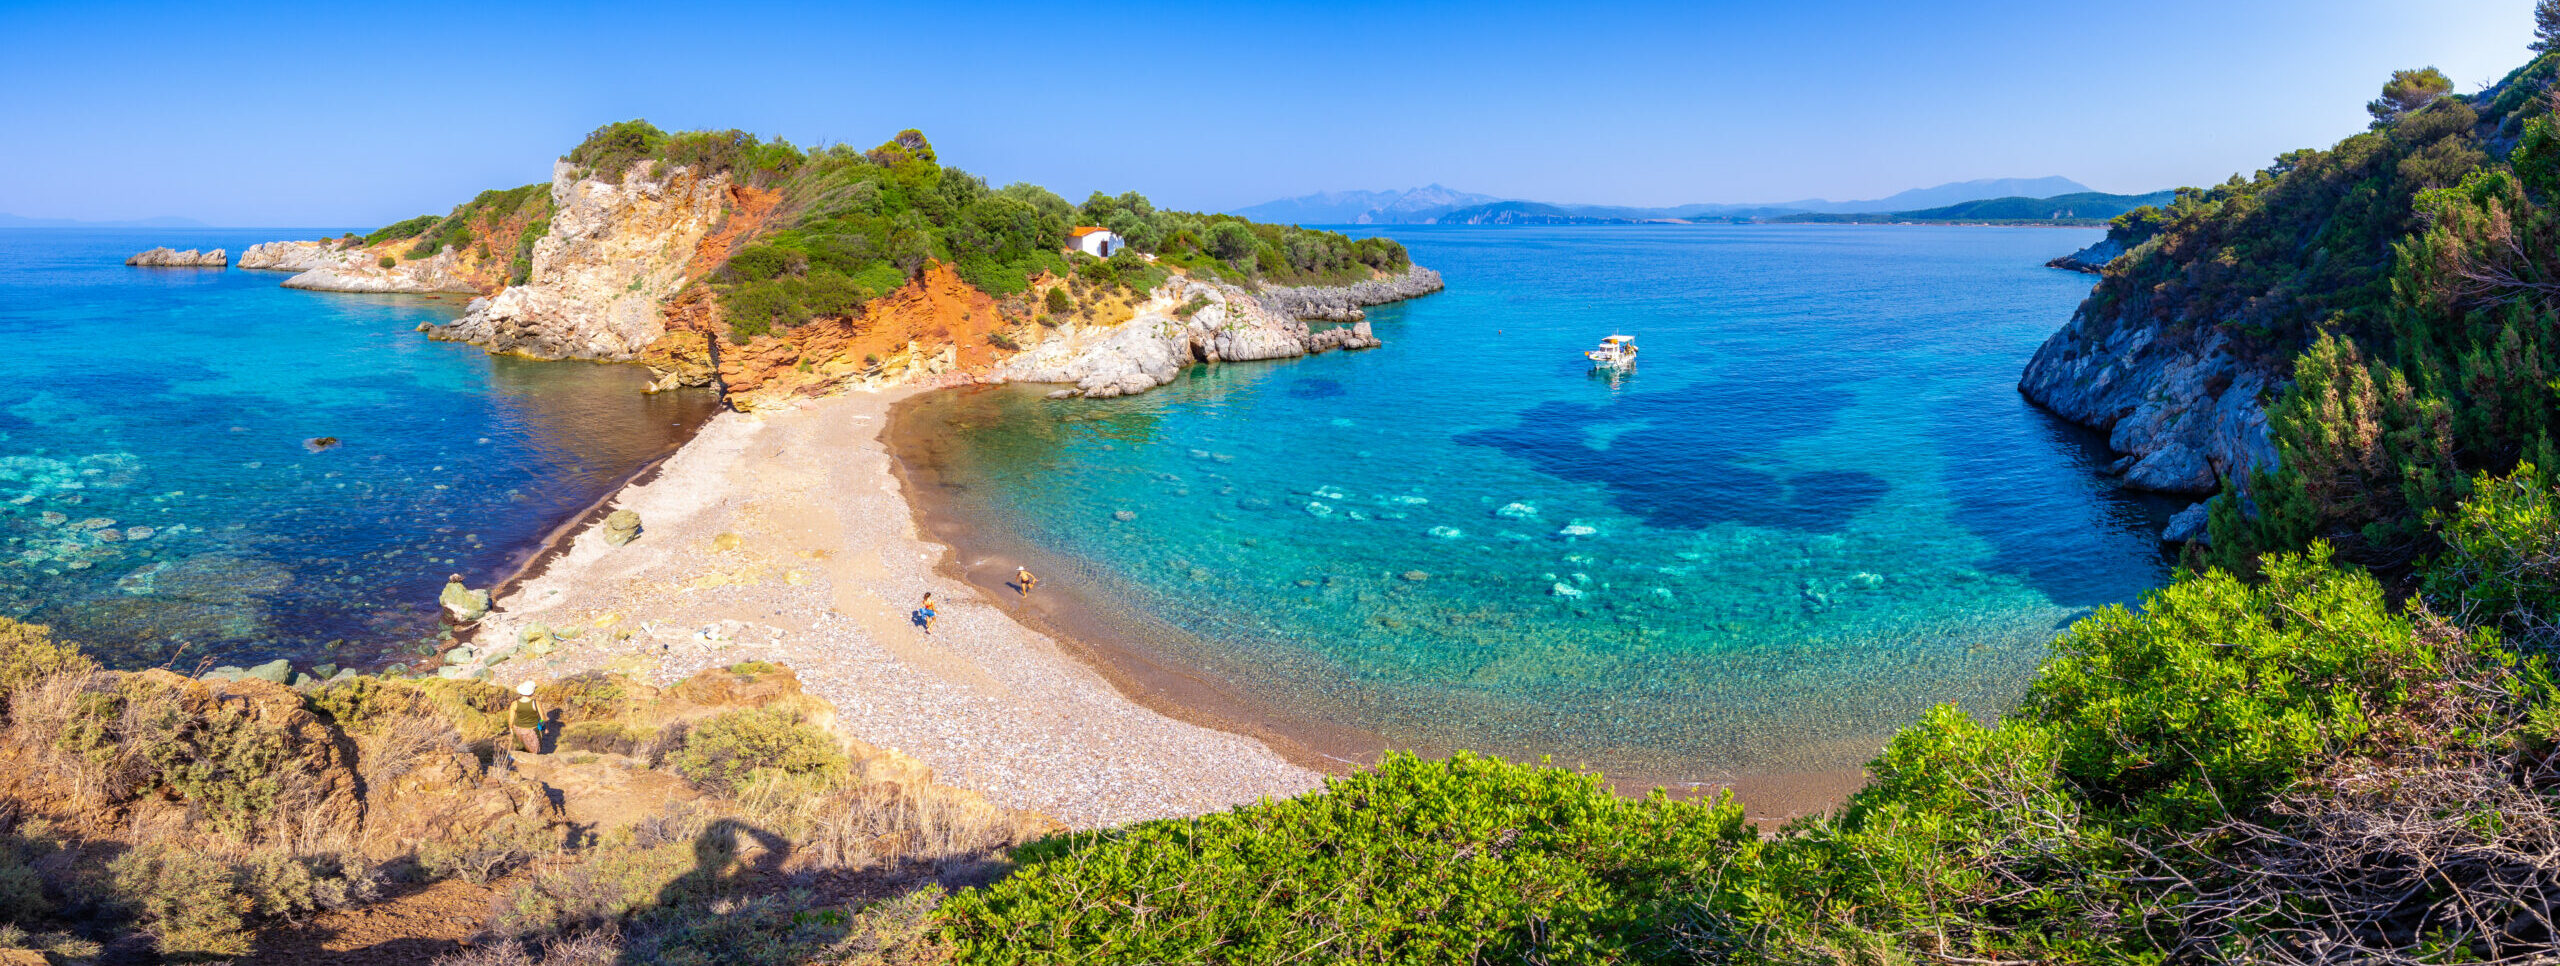 The twin beach of lovers in Evia